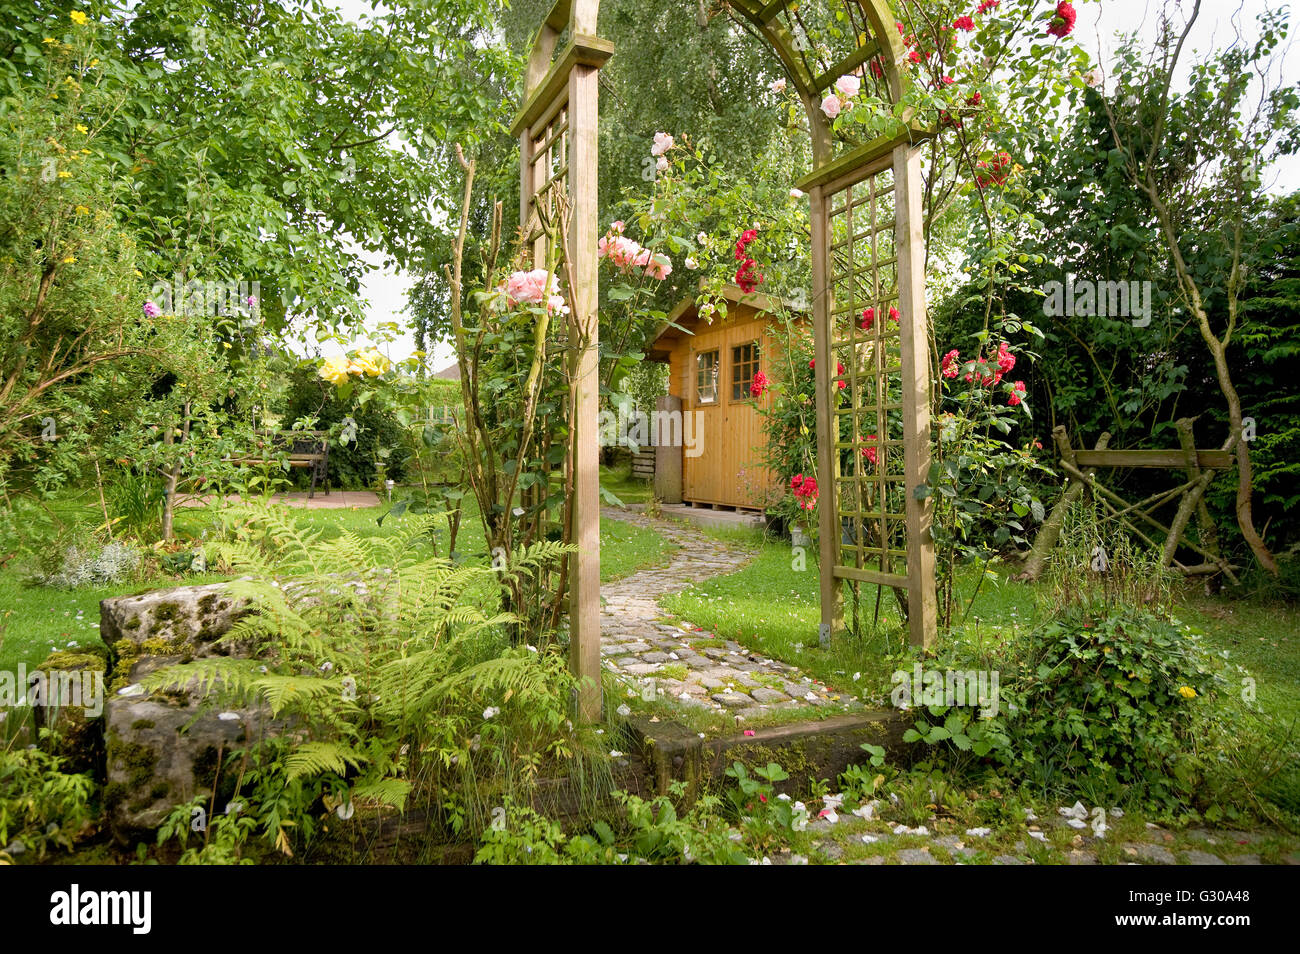 Garden idyll with a garden shed and rose arch with blooming red roses - Stock Image